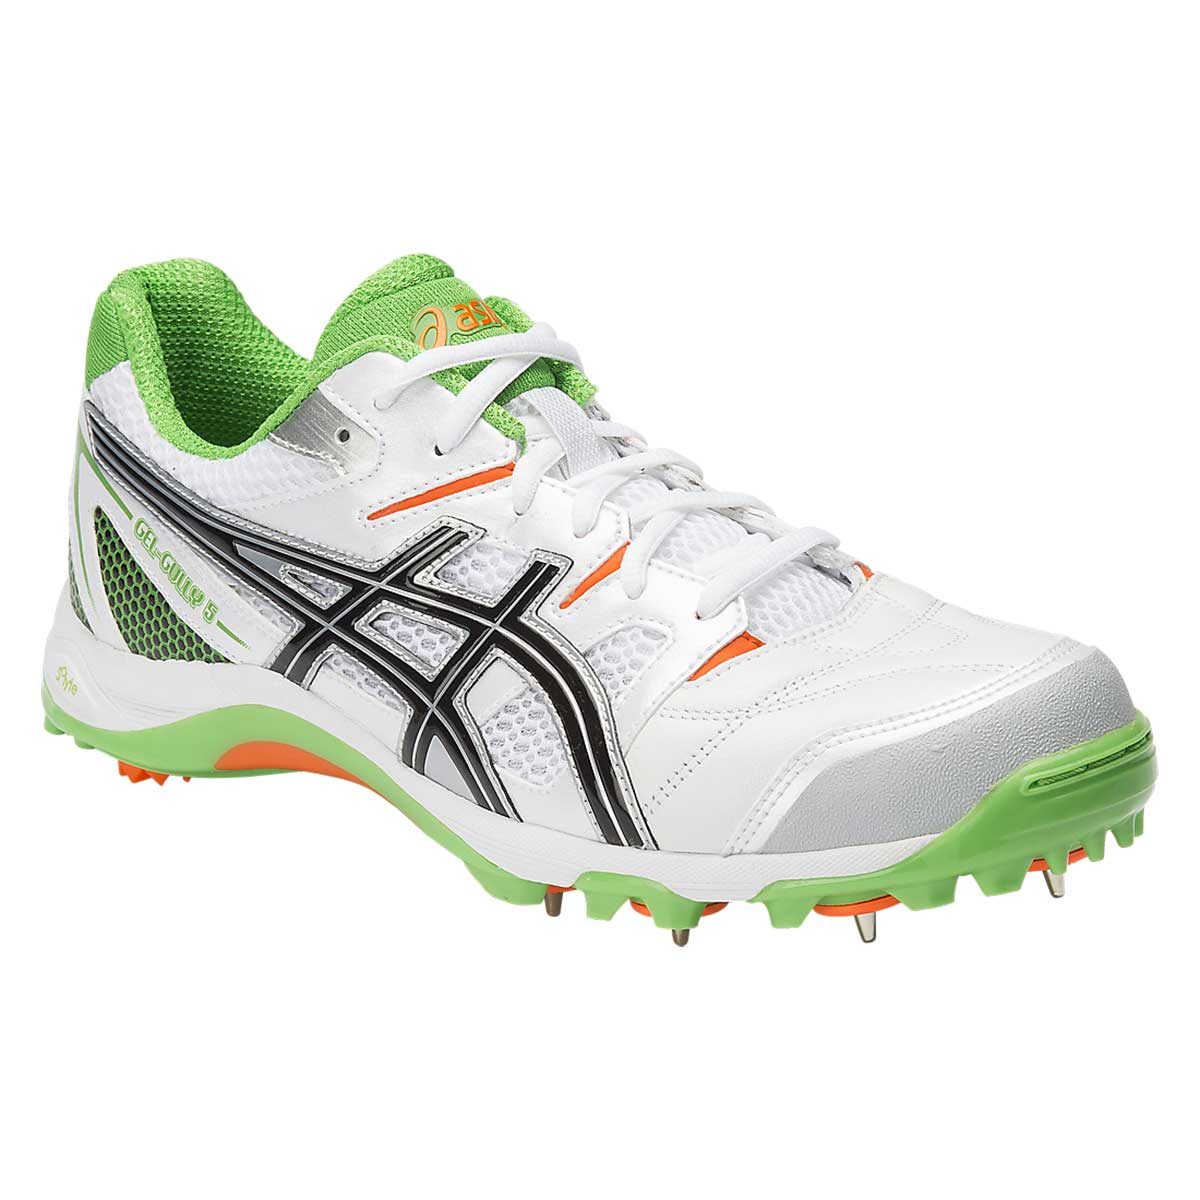 Cricket Shoes, Cricket, Sports, Buy, Asics, Asics Gel Gully 5 Cricket Shoes  (White/Black/Green)